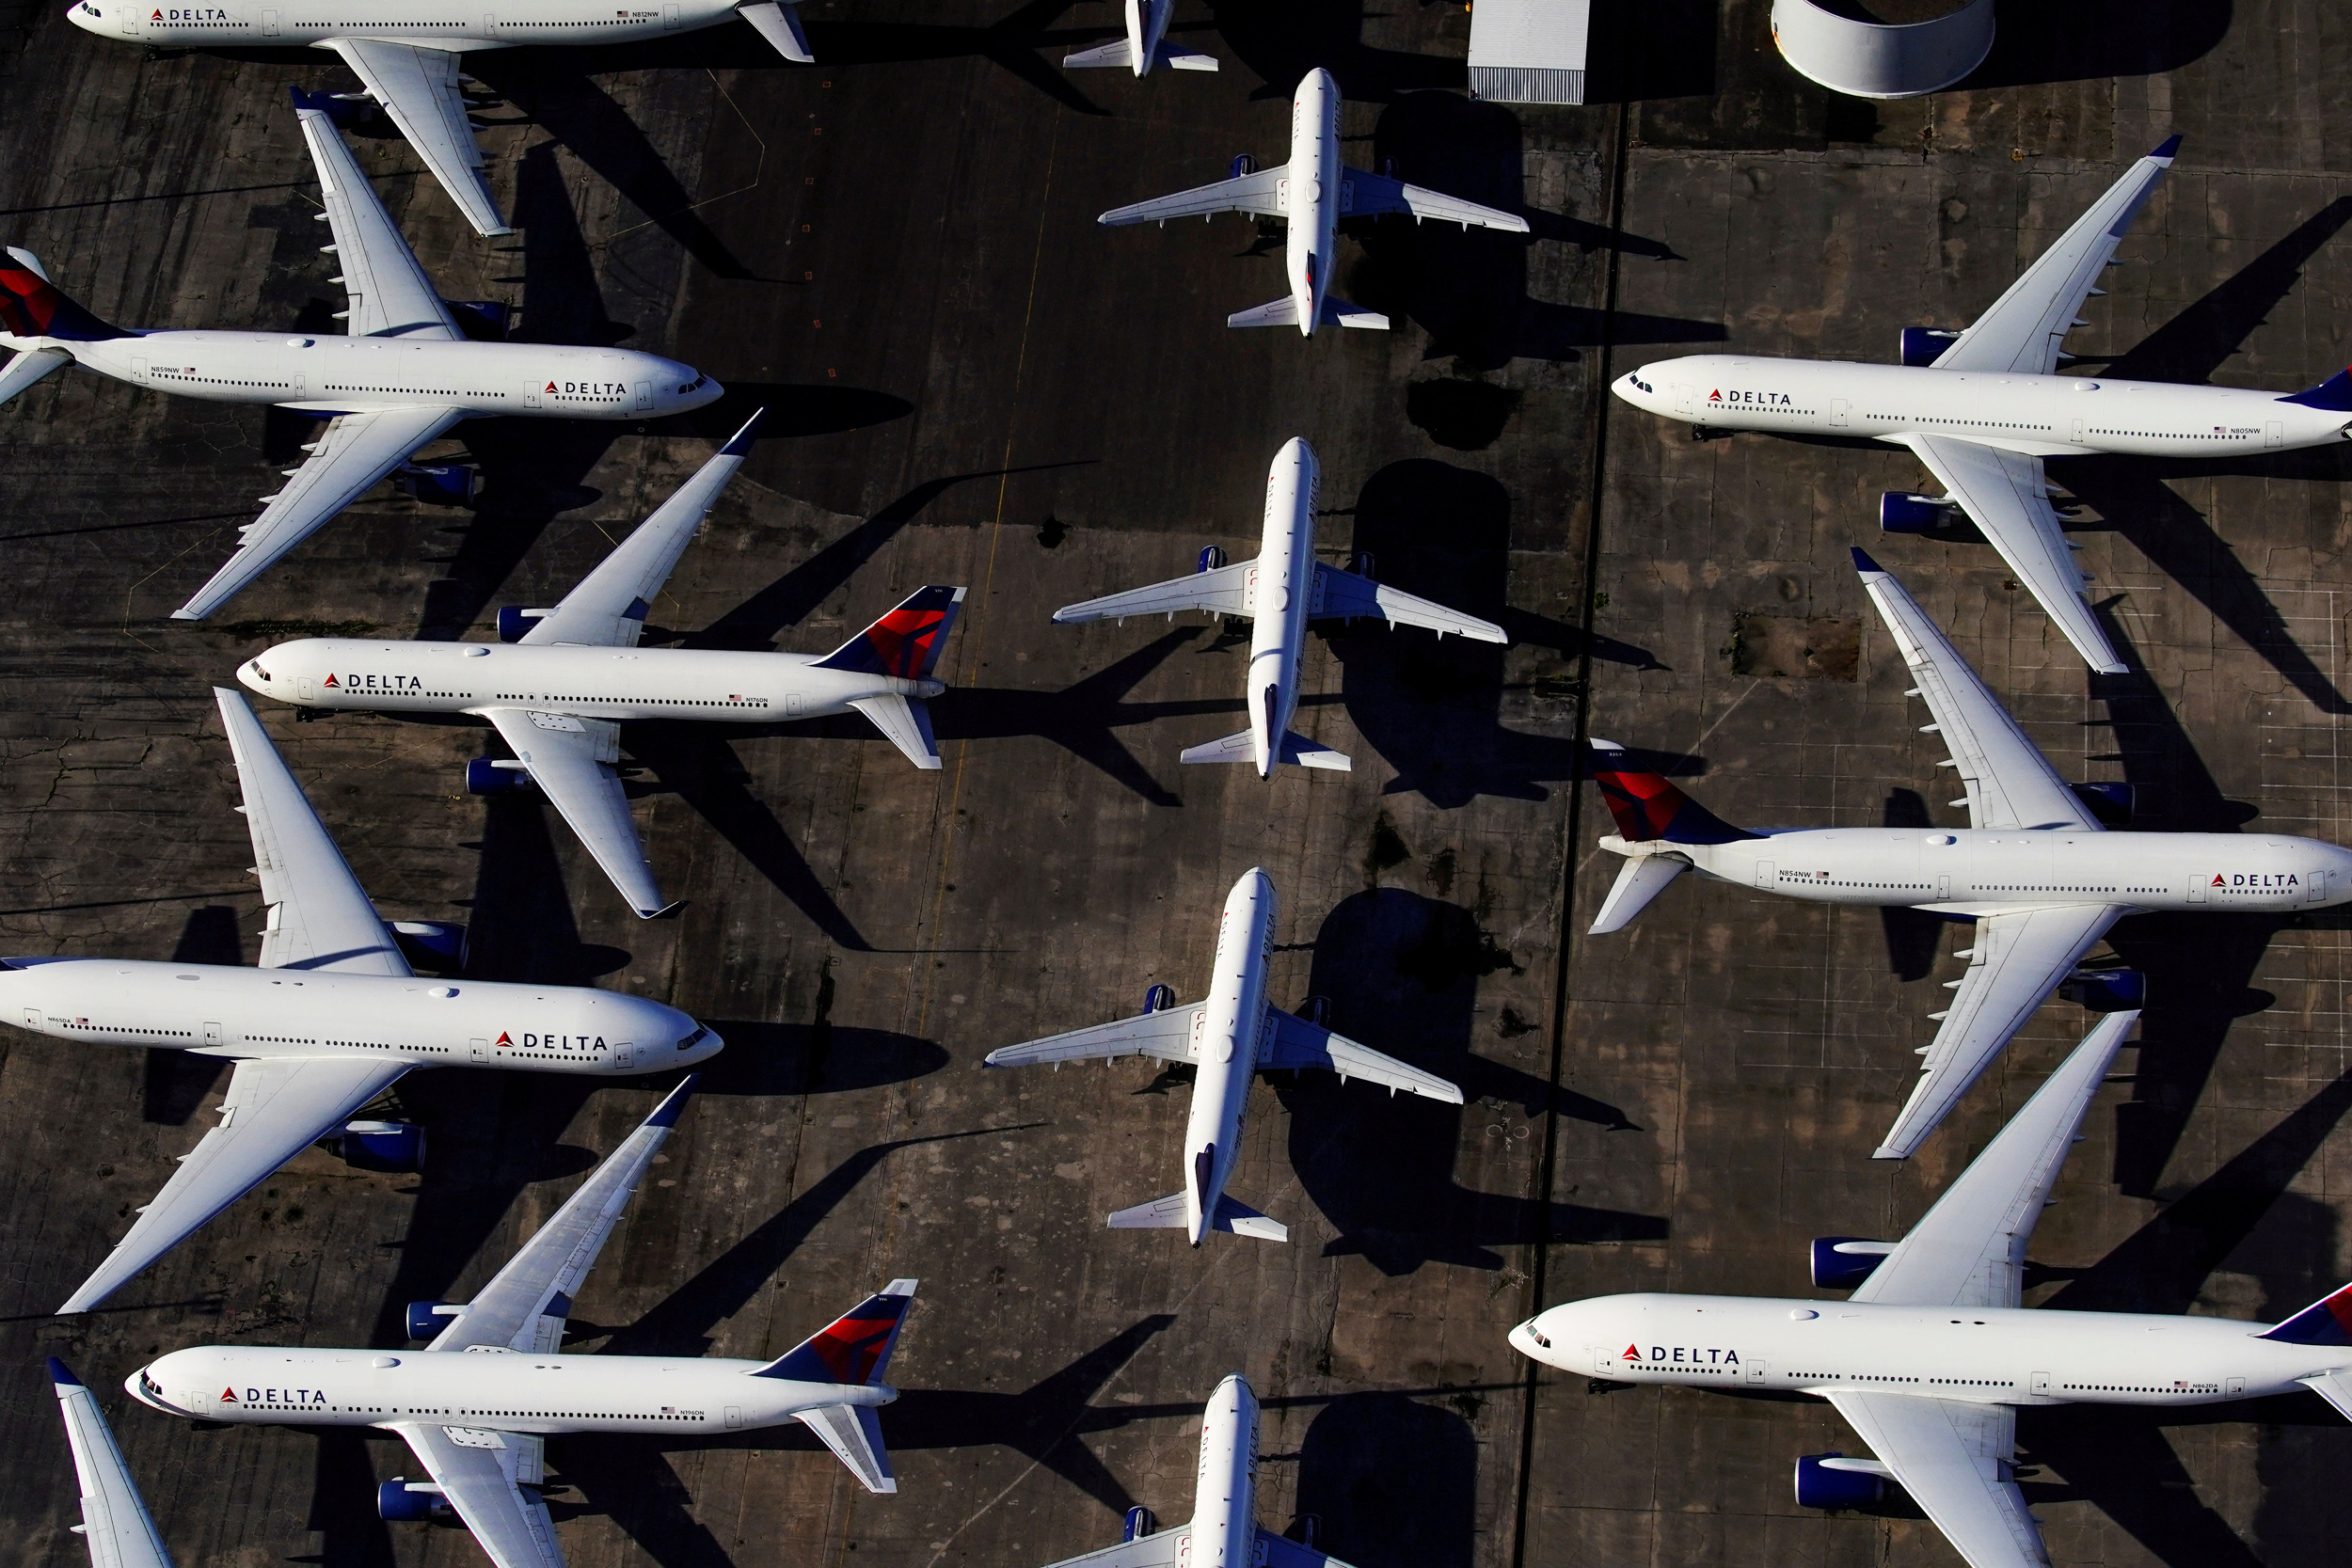 nbcnews.com - Around 35,000 airline workers could lose their job tonight if Congress doesn't approve more aid